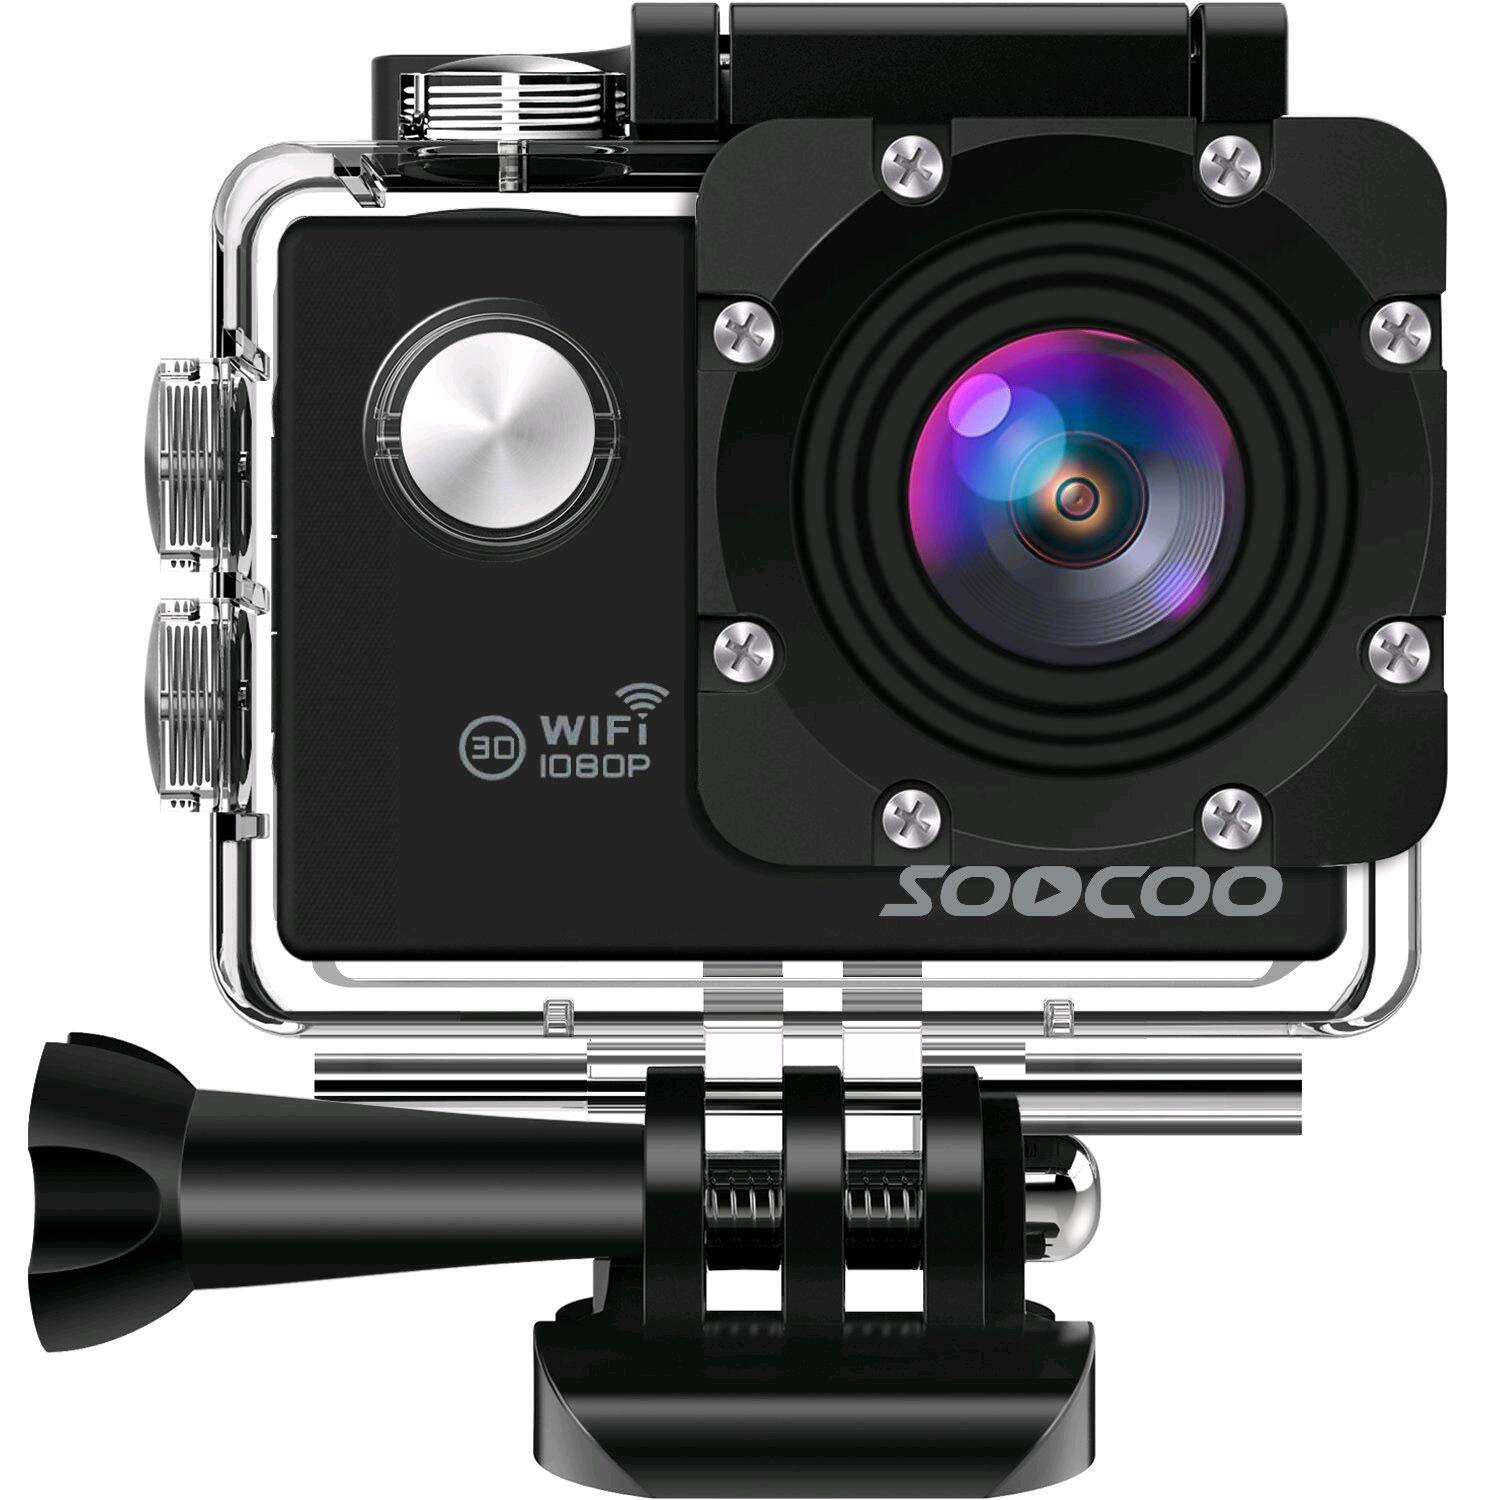 SOOCOO WIFI Action Camera, 12MP Full HD 1080P Sports Video Camera, Black